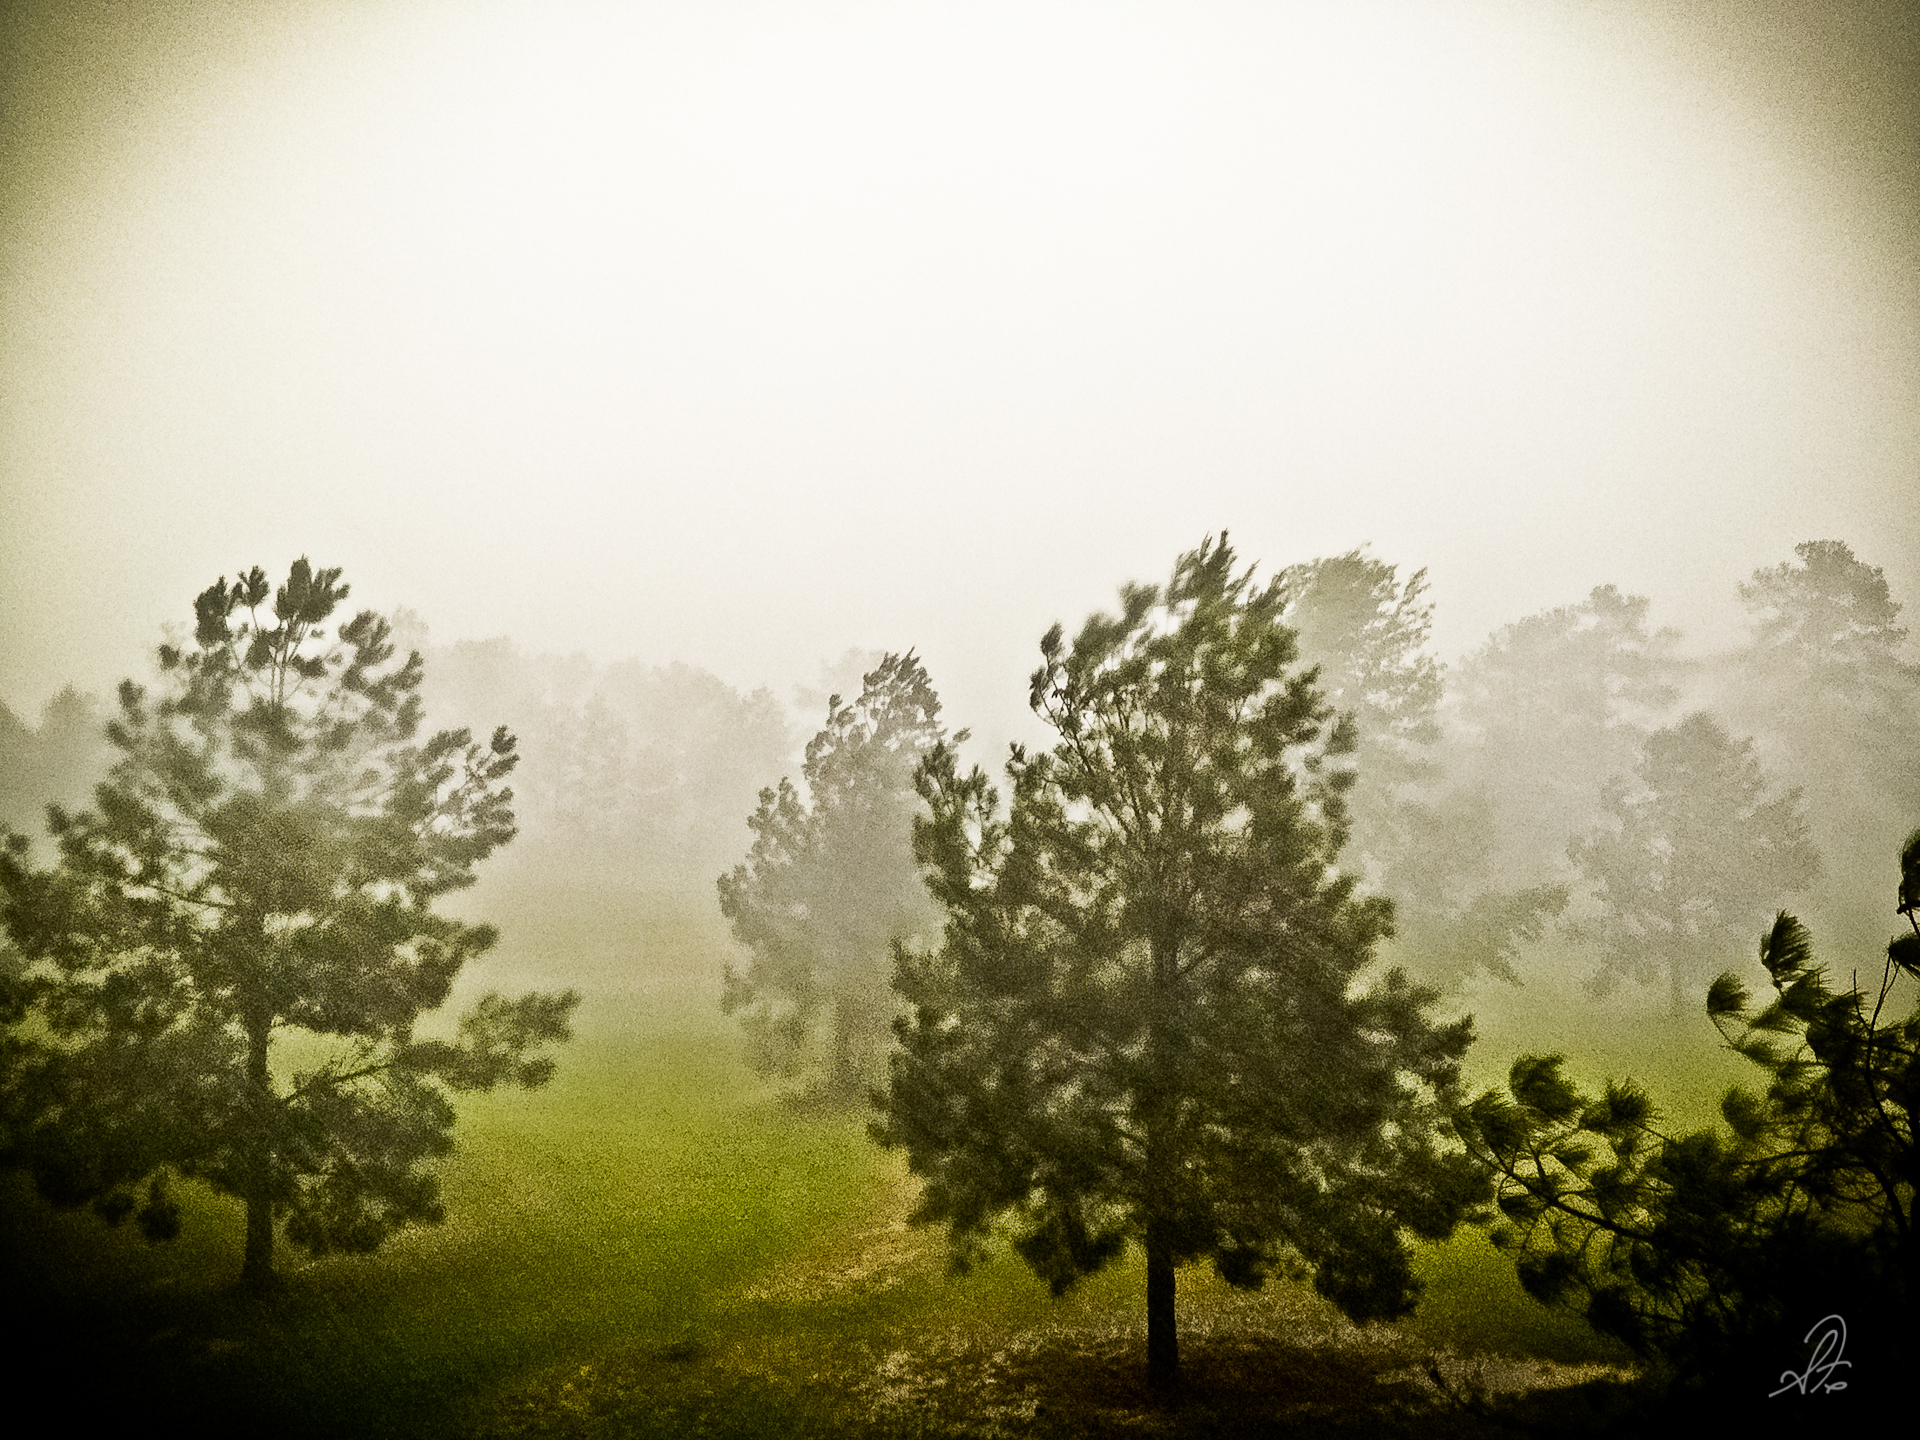 Project 365 [Day 167] Severe Thunderstorms Roll Across the Pasture